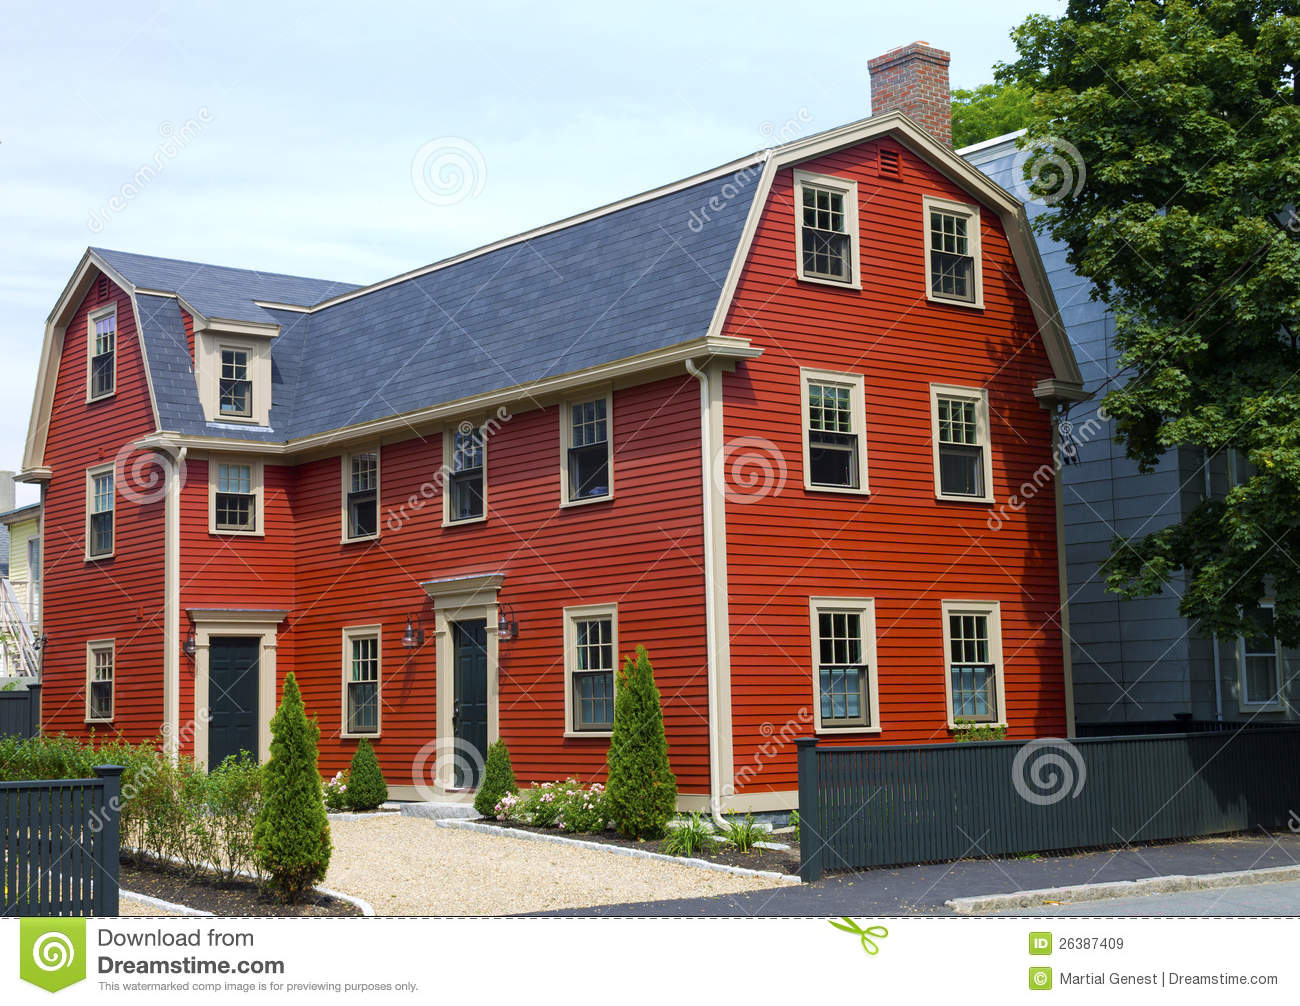 Witch house in salem massachusetts stock image for Salem house